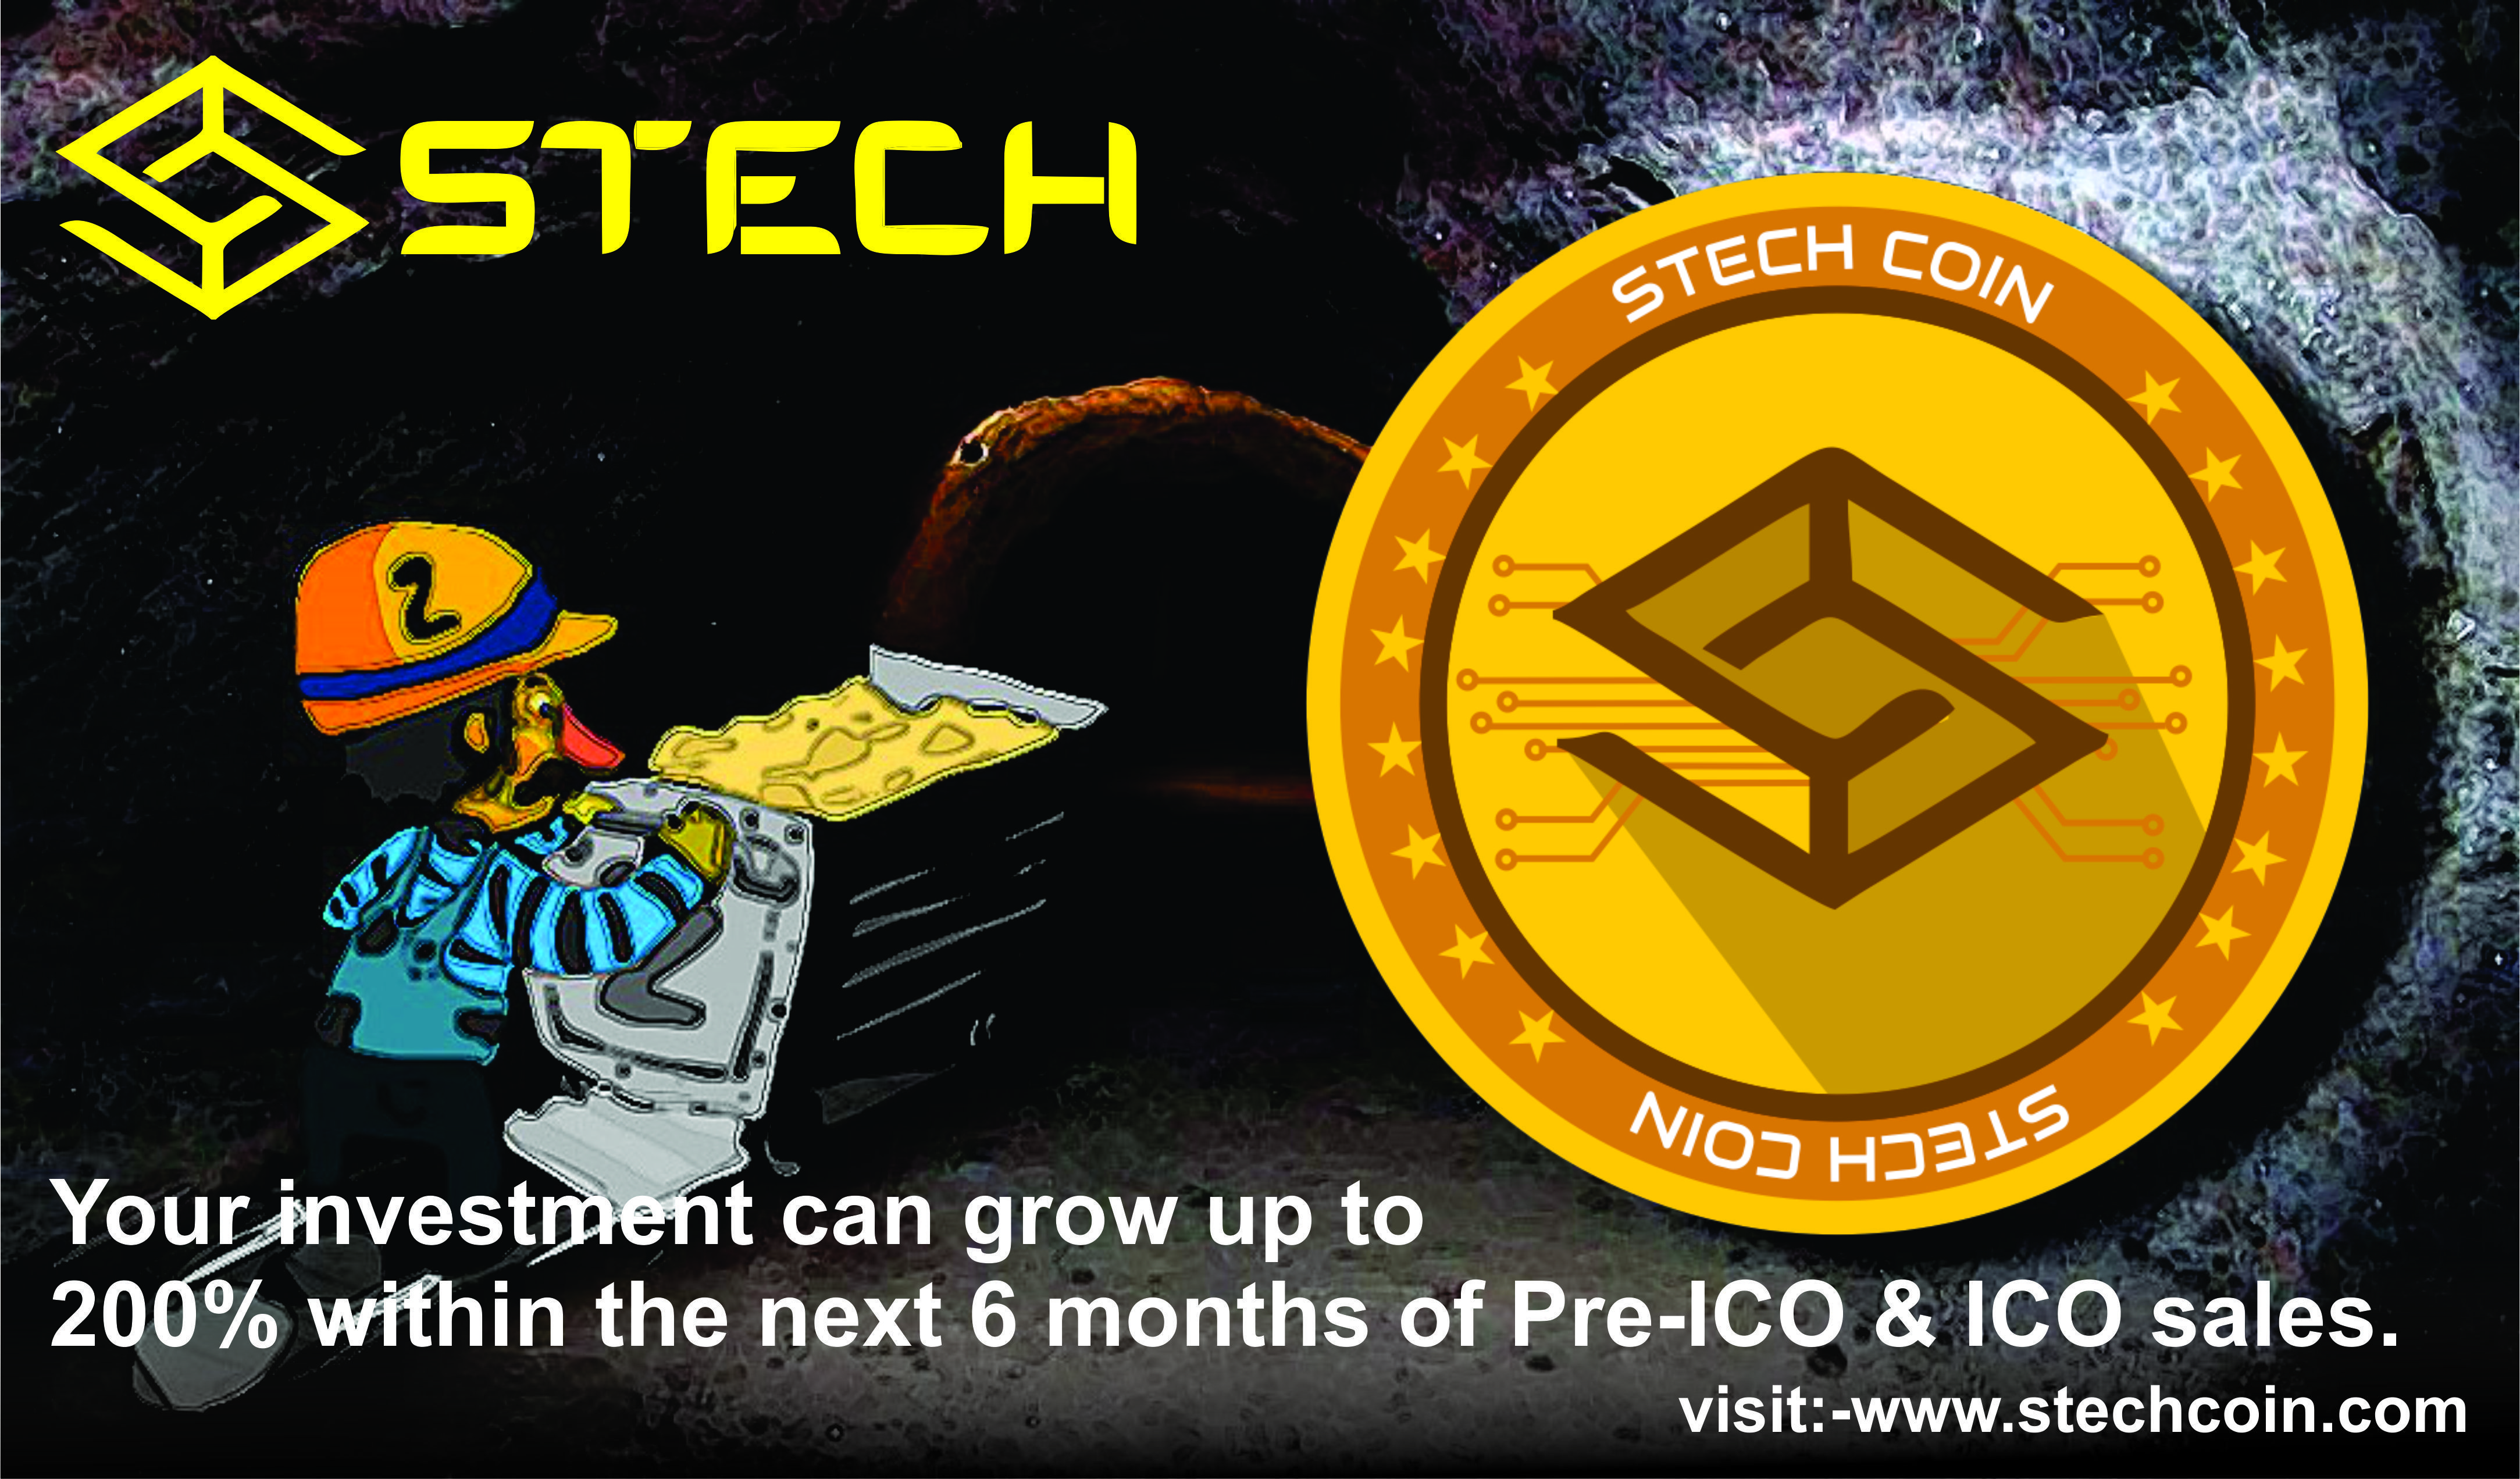 Your Investment Can Grow Up To 200 Within 6 Months Visit Http Www Stechcoin Com Stech Coin Bitcoin Bitcoinnews Swing Trading Cryptocurrency Day Trader